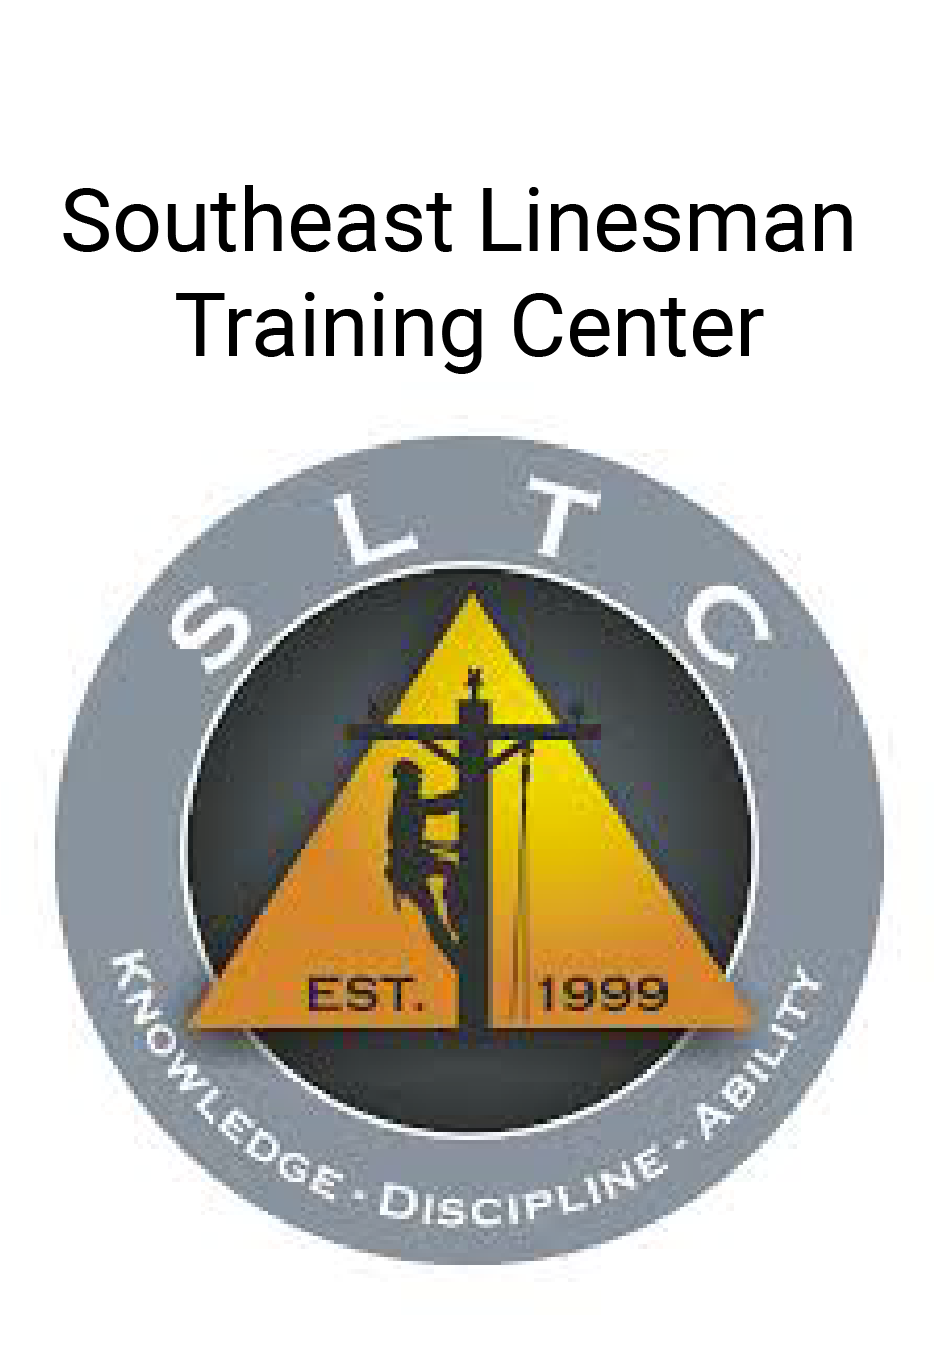 Southeast Linesman Training Center